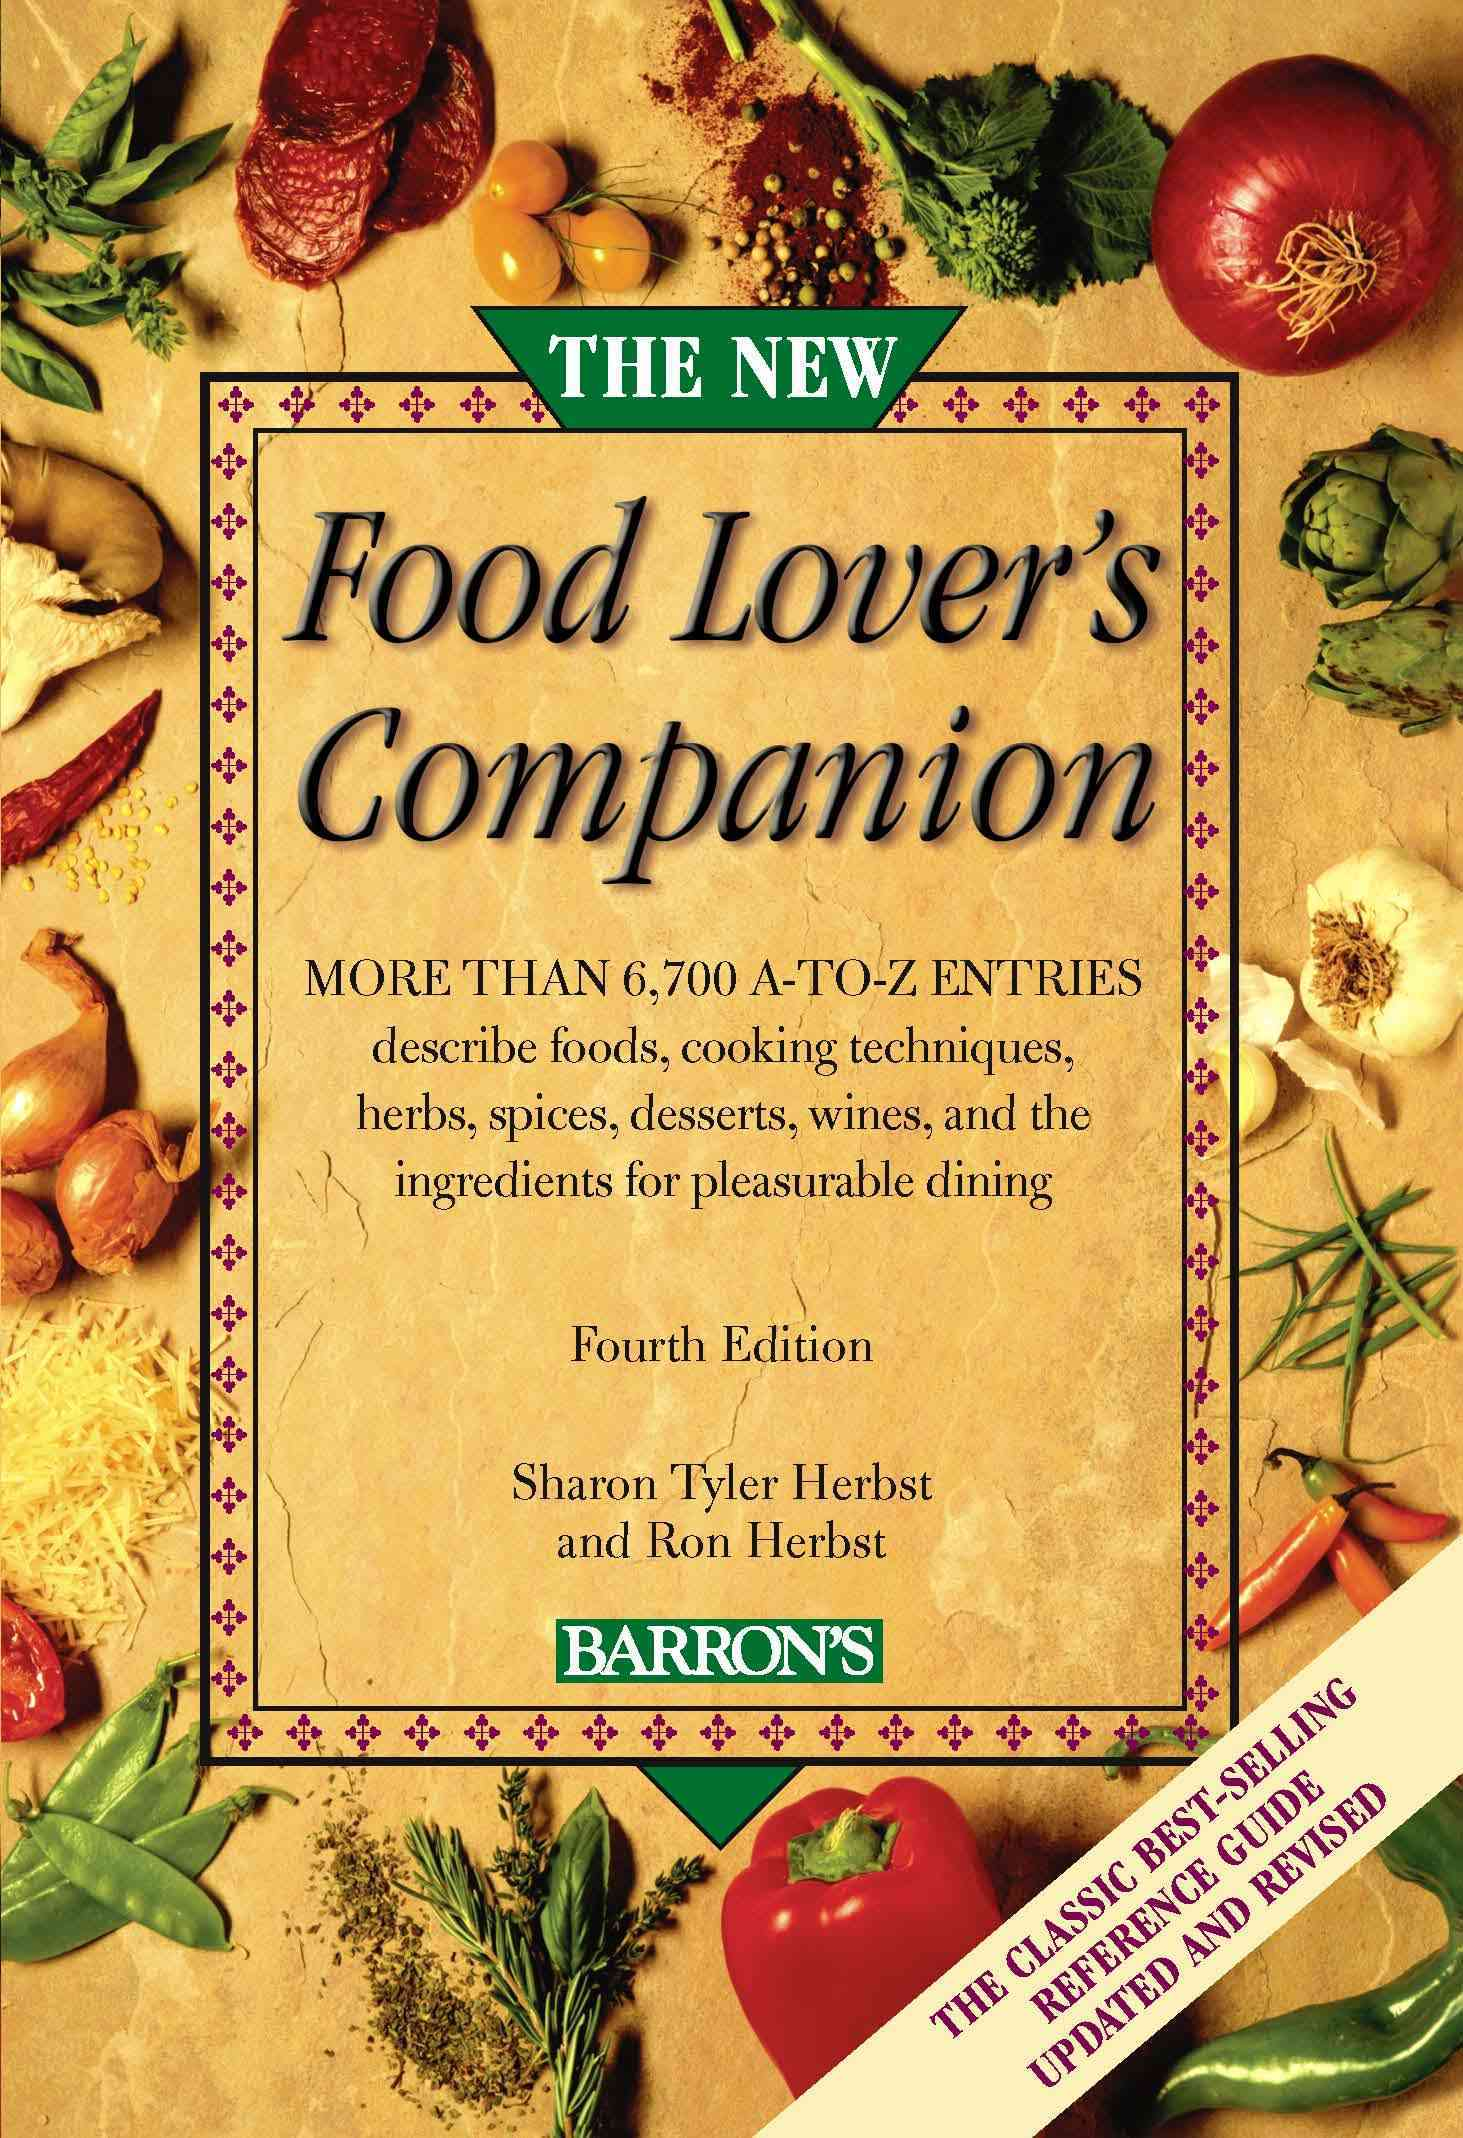 The New Food Lover's Companion: More than 6,700 A-to-Z entries describe foods, cooking techniques, herbs, spices,... (Paperback)